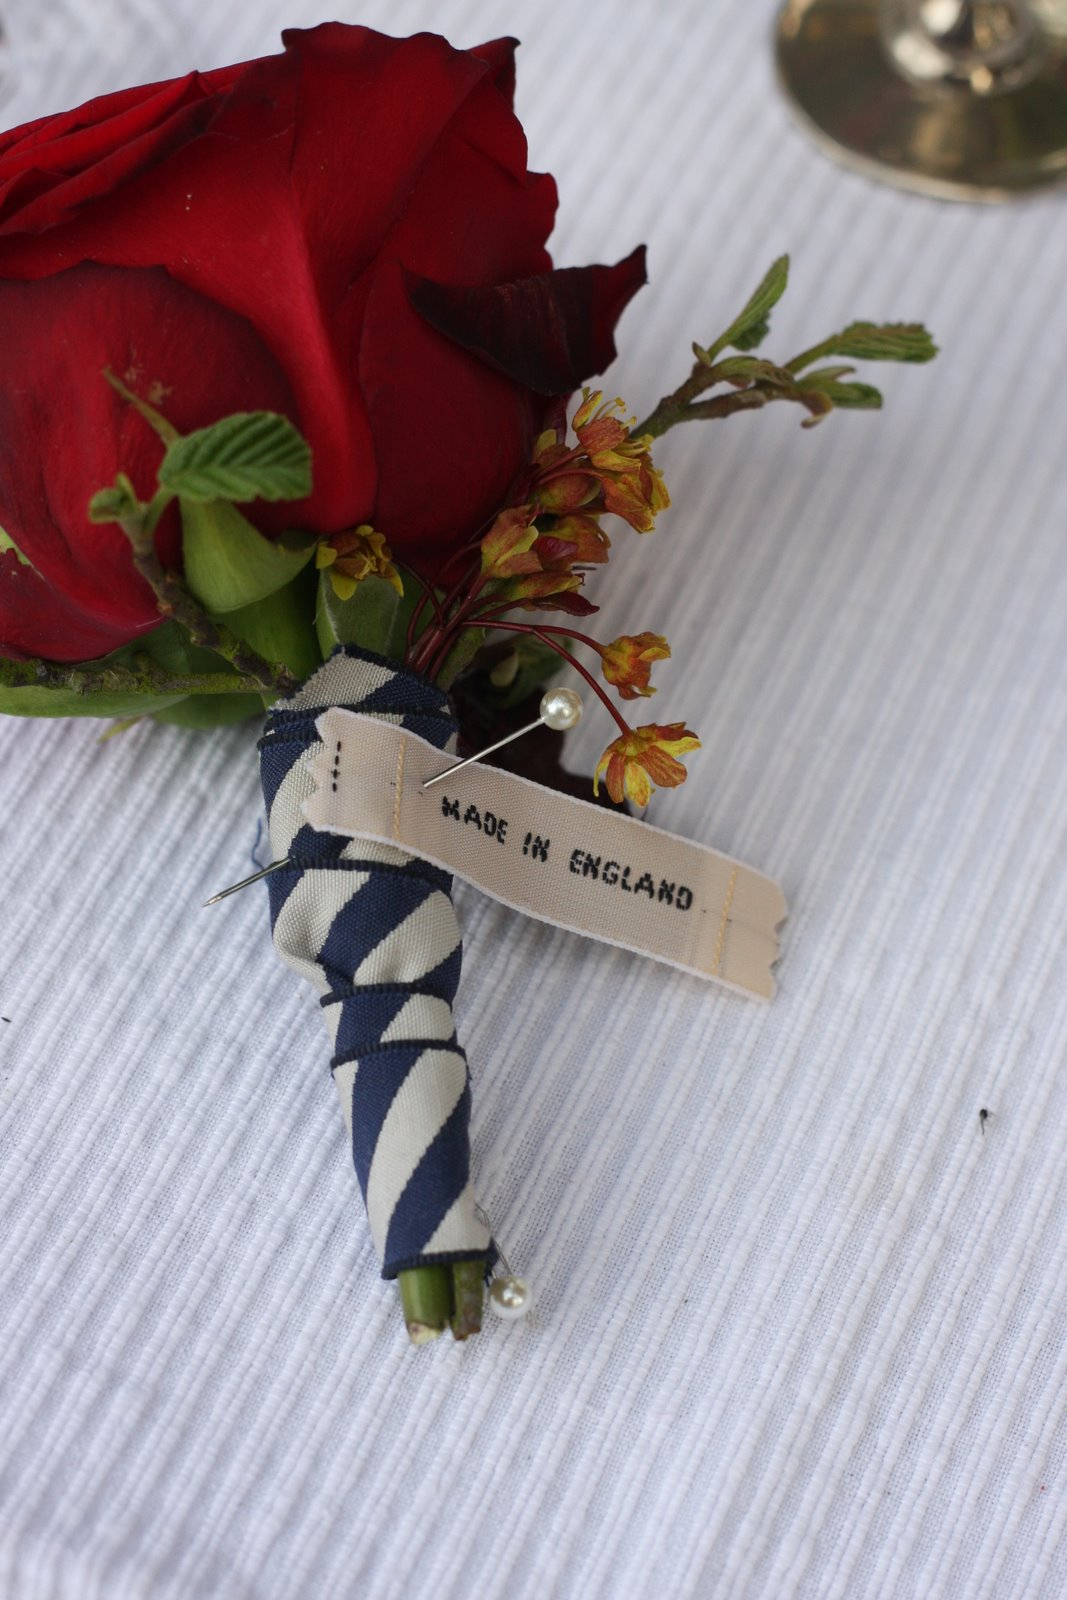 Miss Pickering Royal Garden Party boutonniere